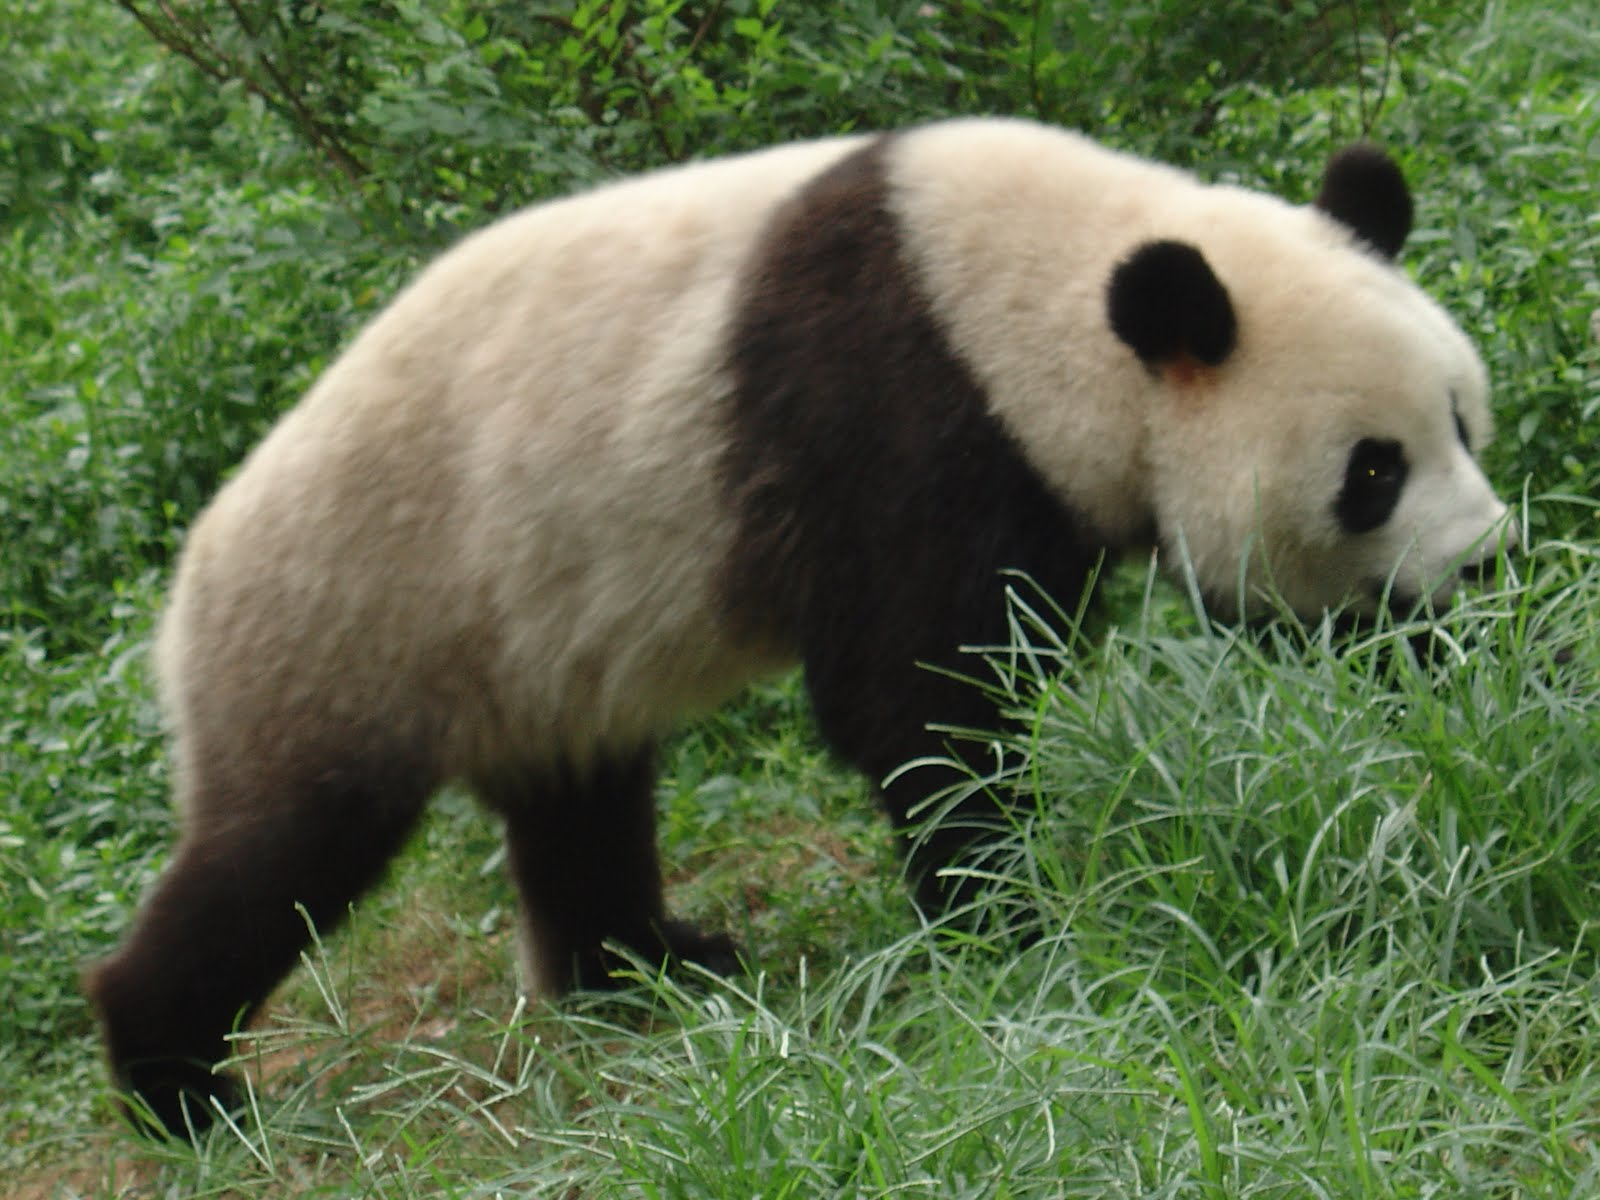 endless life photo essay panda is one of the extinct animals in this world their habitat is in south western scientists currently estimate the population of the giant panda